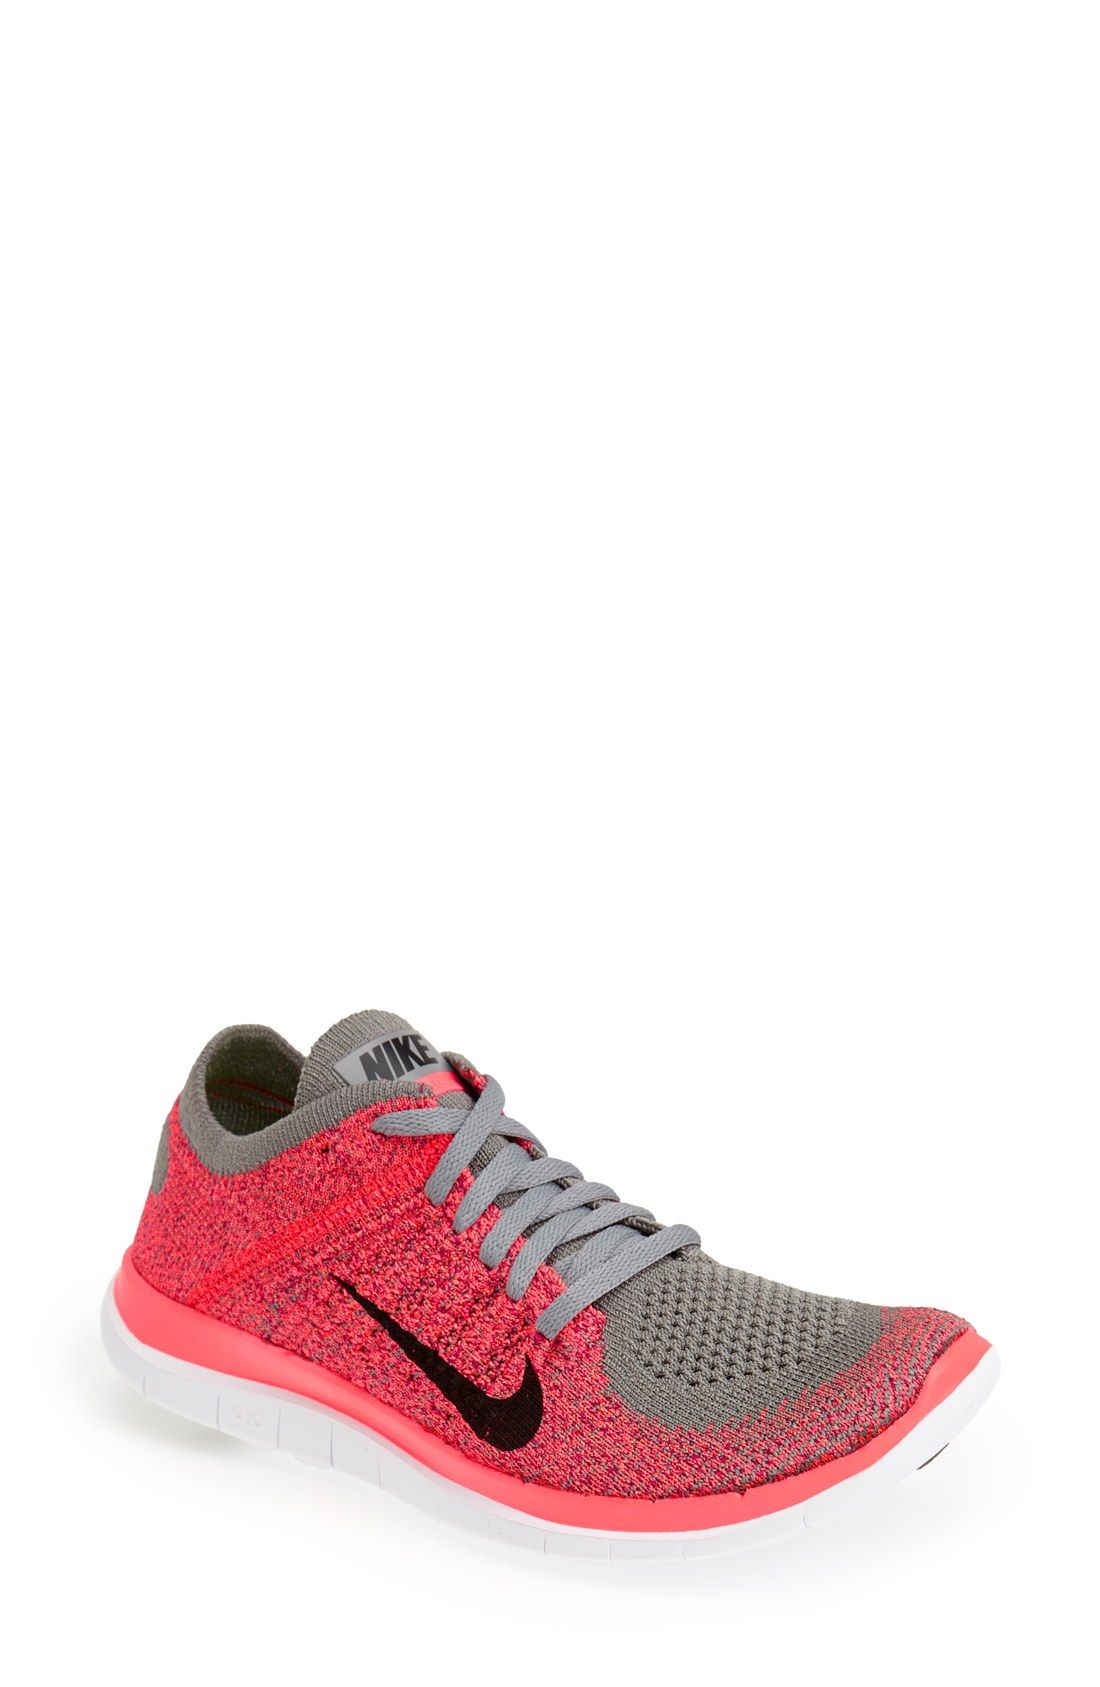 8556bebd48e These pink Nike  Free Flyknit 4.0  running shoes fit like socks and are  light